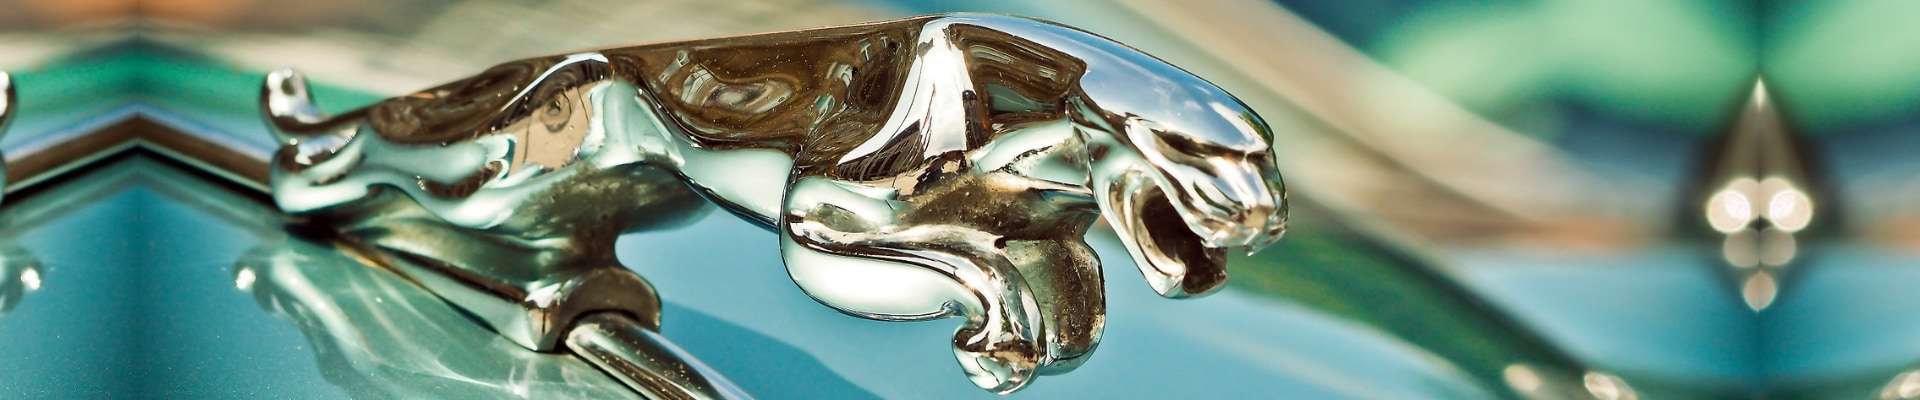 Zoomed in camera angle of the Jaguar Emblem mounted ton the hood of a used Jaguar car